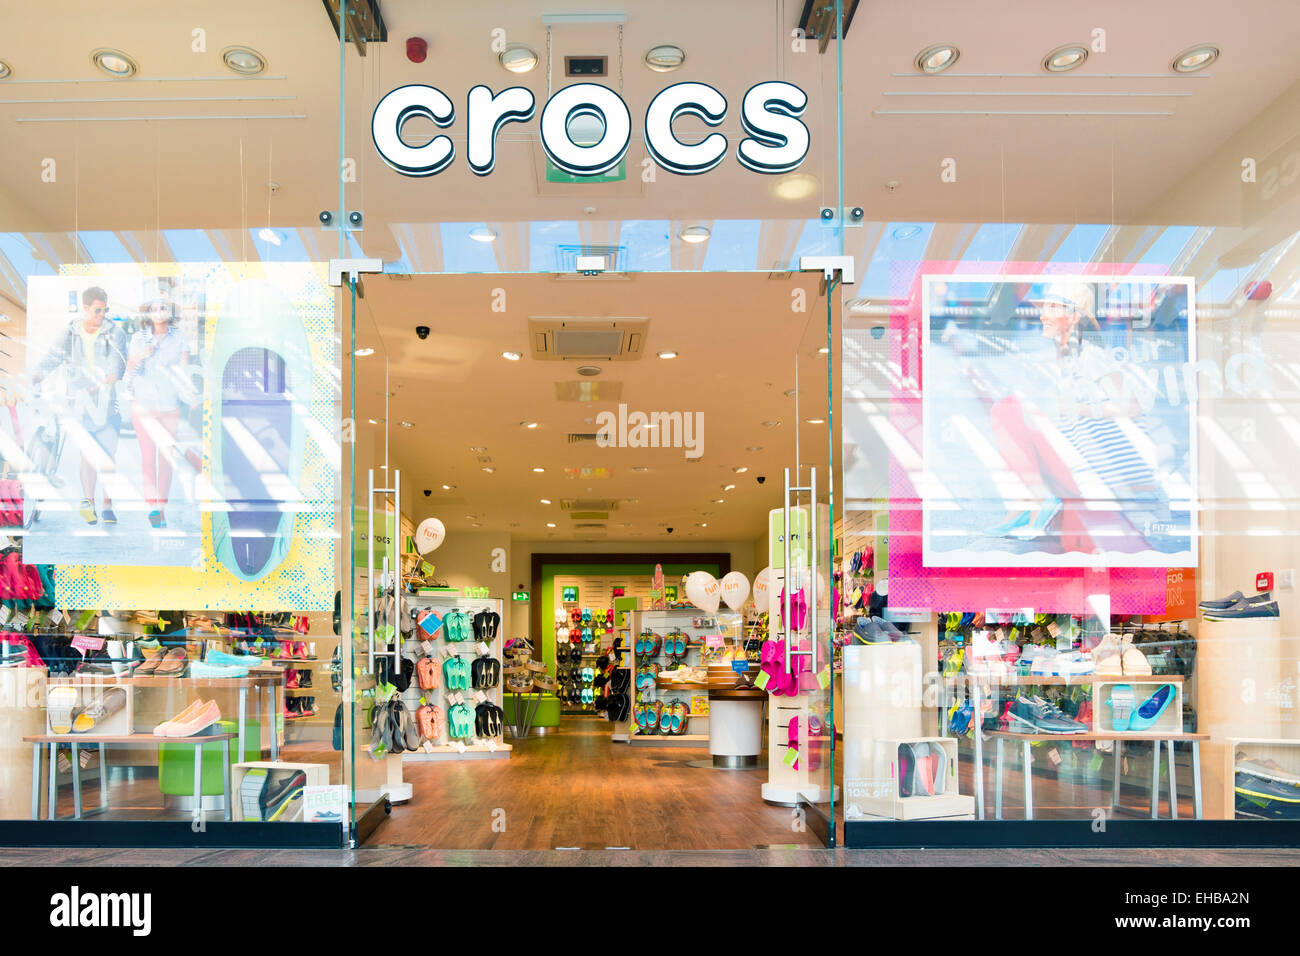 5970950ca5afc7 Crocs shoes store Cribbs Causeway near Bristol